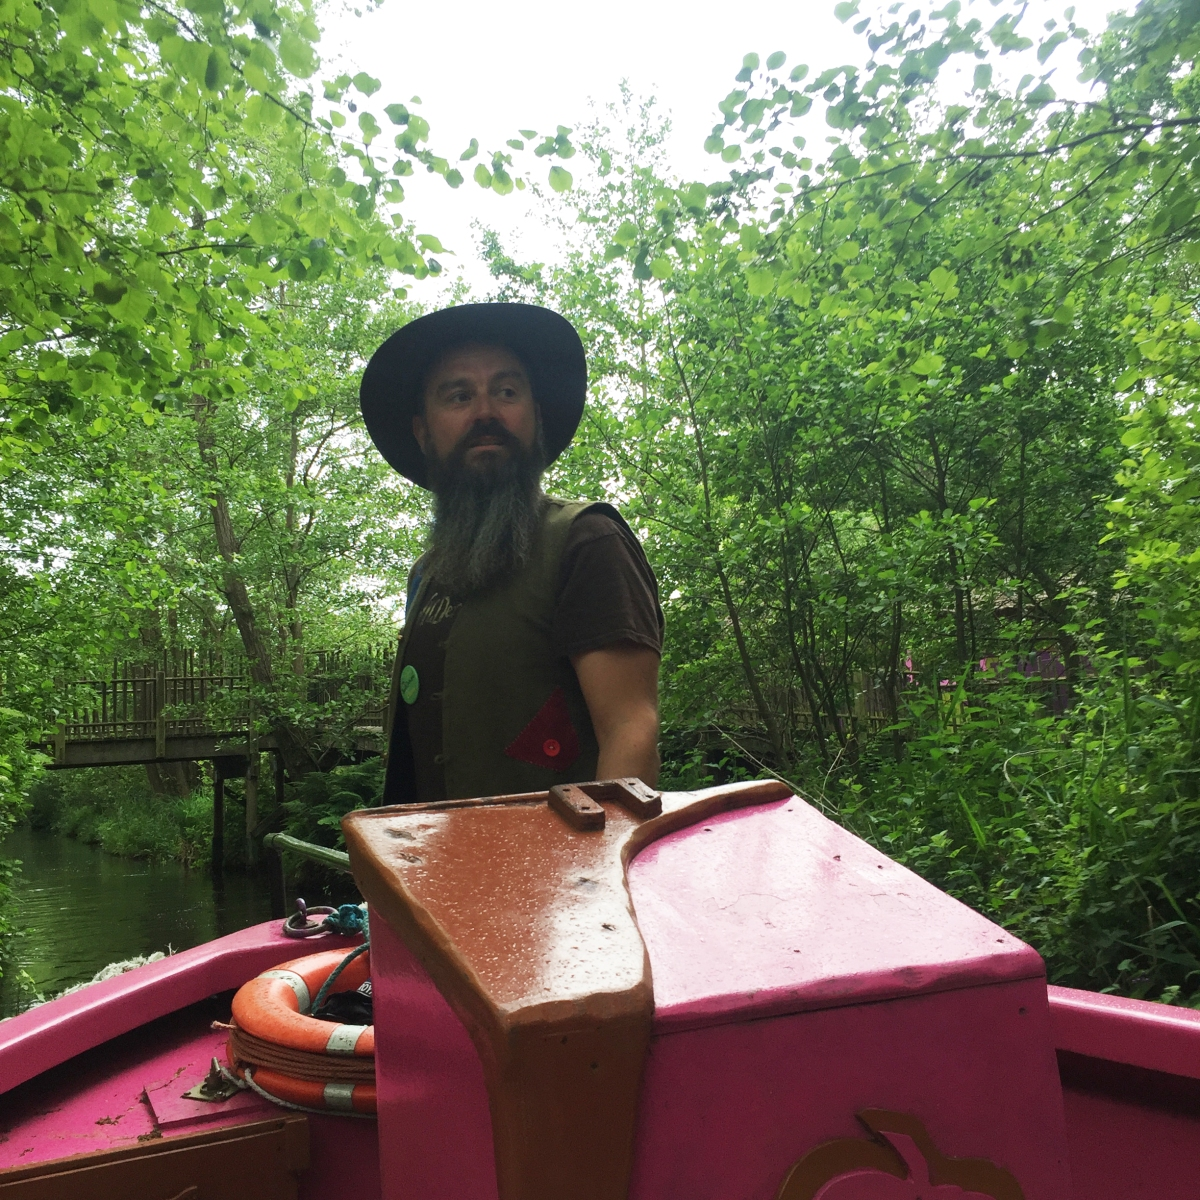 A photograph of Chris the boatman on his pink boat.